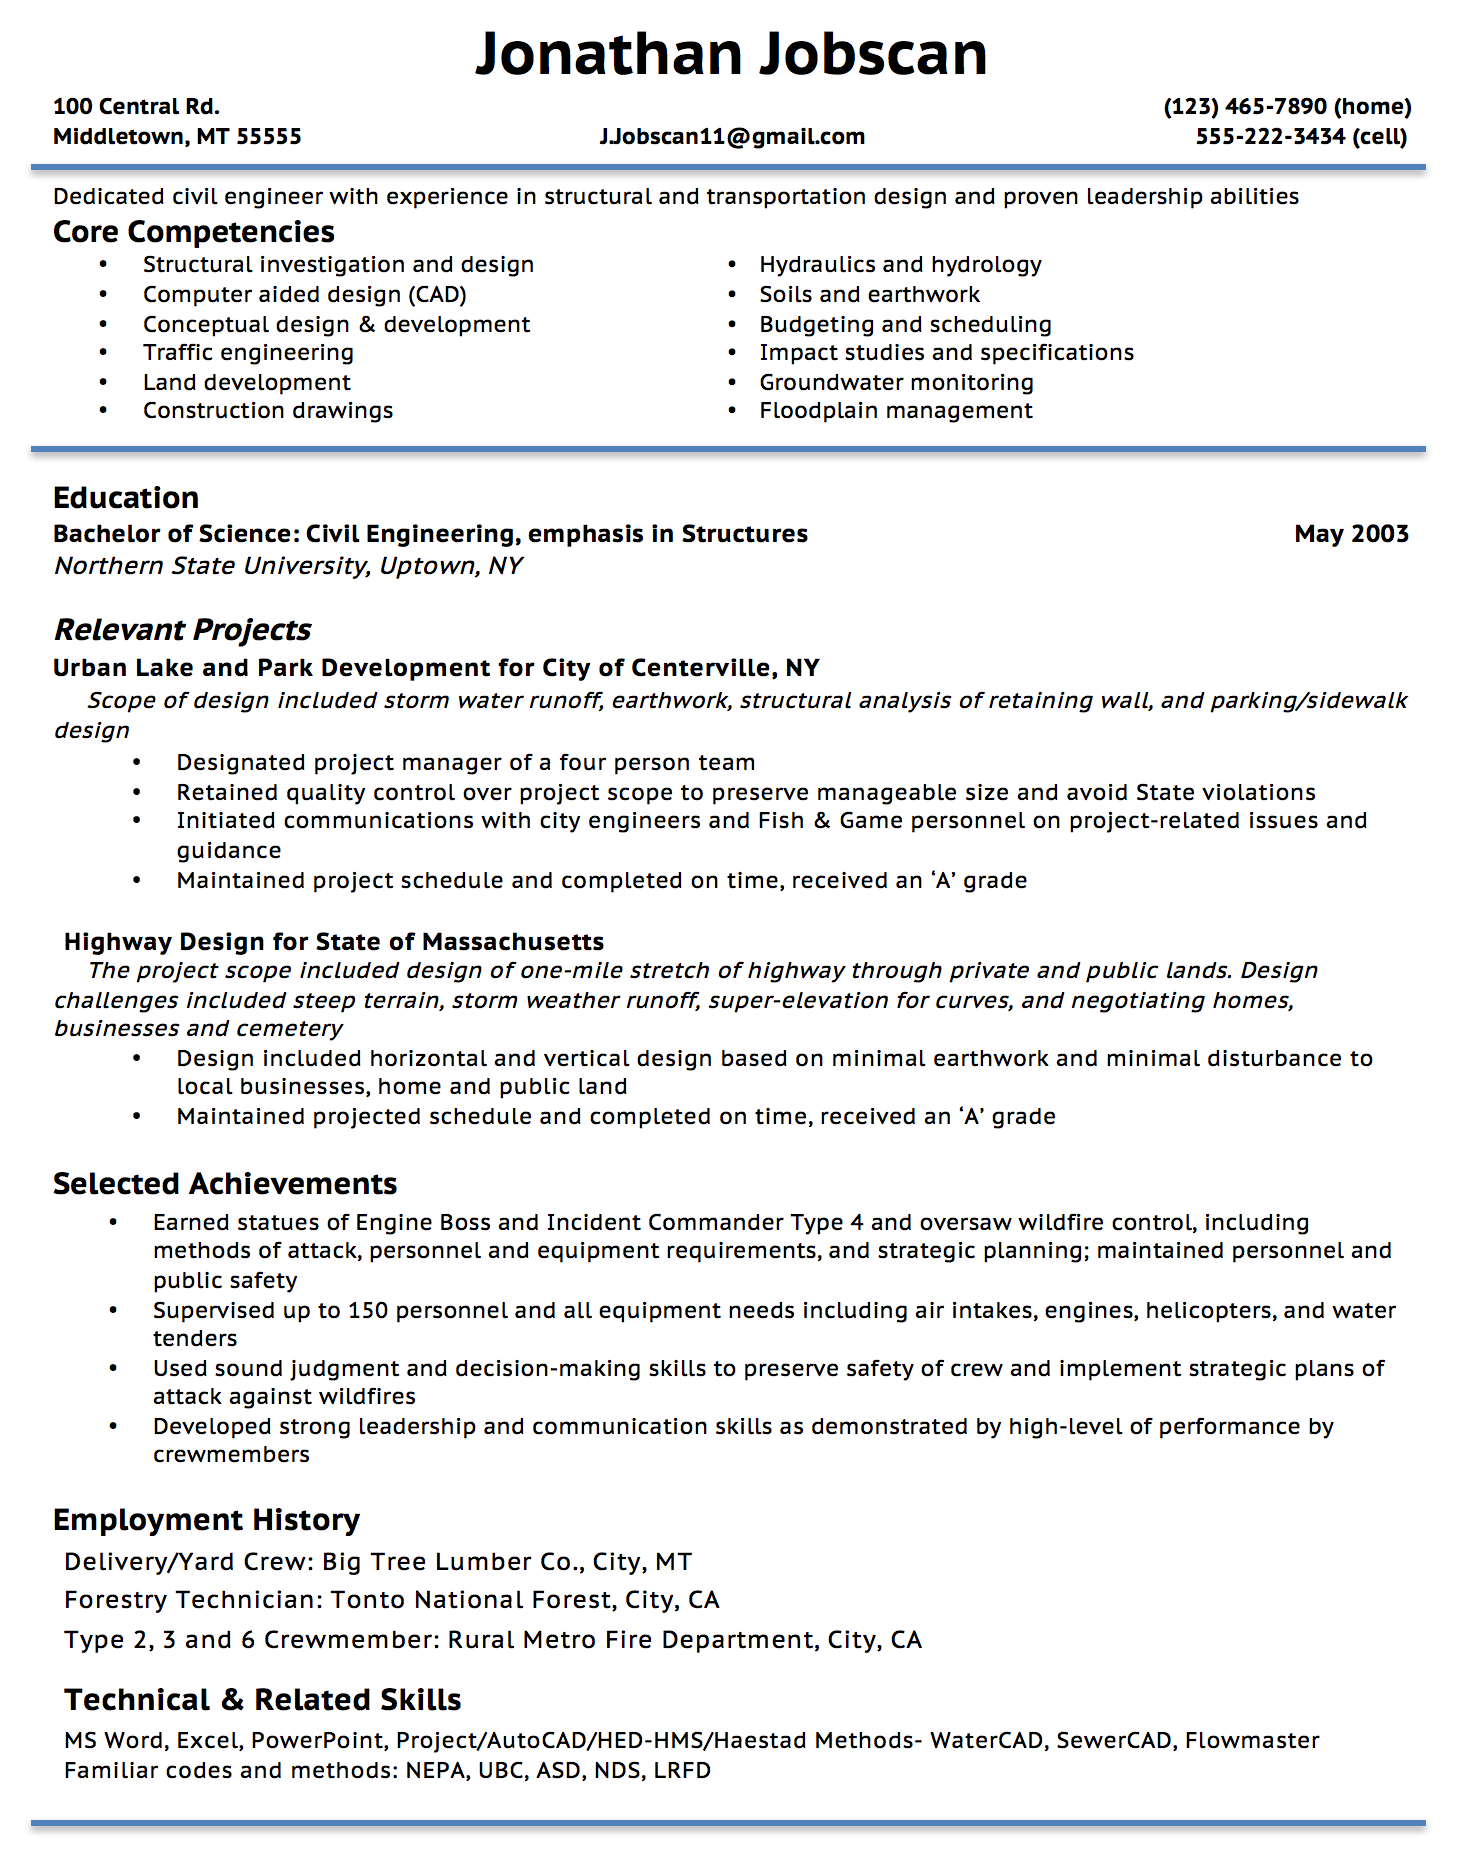 Opposenewapstandardsus  Splendid Resume Writing Guide  Jobscan With Excellent Example Of A Functional Resume Format With Lovely Engineer Resume Format Also Resume Qualifications Summary In Addition Cvs Resume And Spanish Resume As Well As Litigation Paralegal Resume Additionally Optimal Resume Brown Mackie From Jobscanco With Opposenewapstandardsus  Excellent Resume Writing Guide  Jobscan With Lovely Example Of A Functional Resume Format And Splendid Engineer Resume Format Also Resume Qualifications Summary In Addition Cvs Resume From Jobscanco